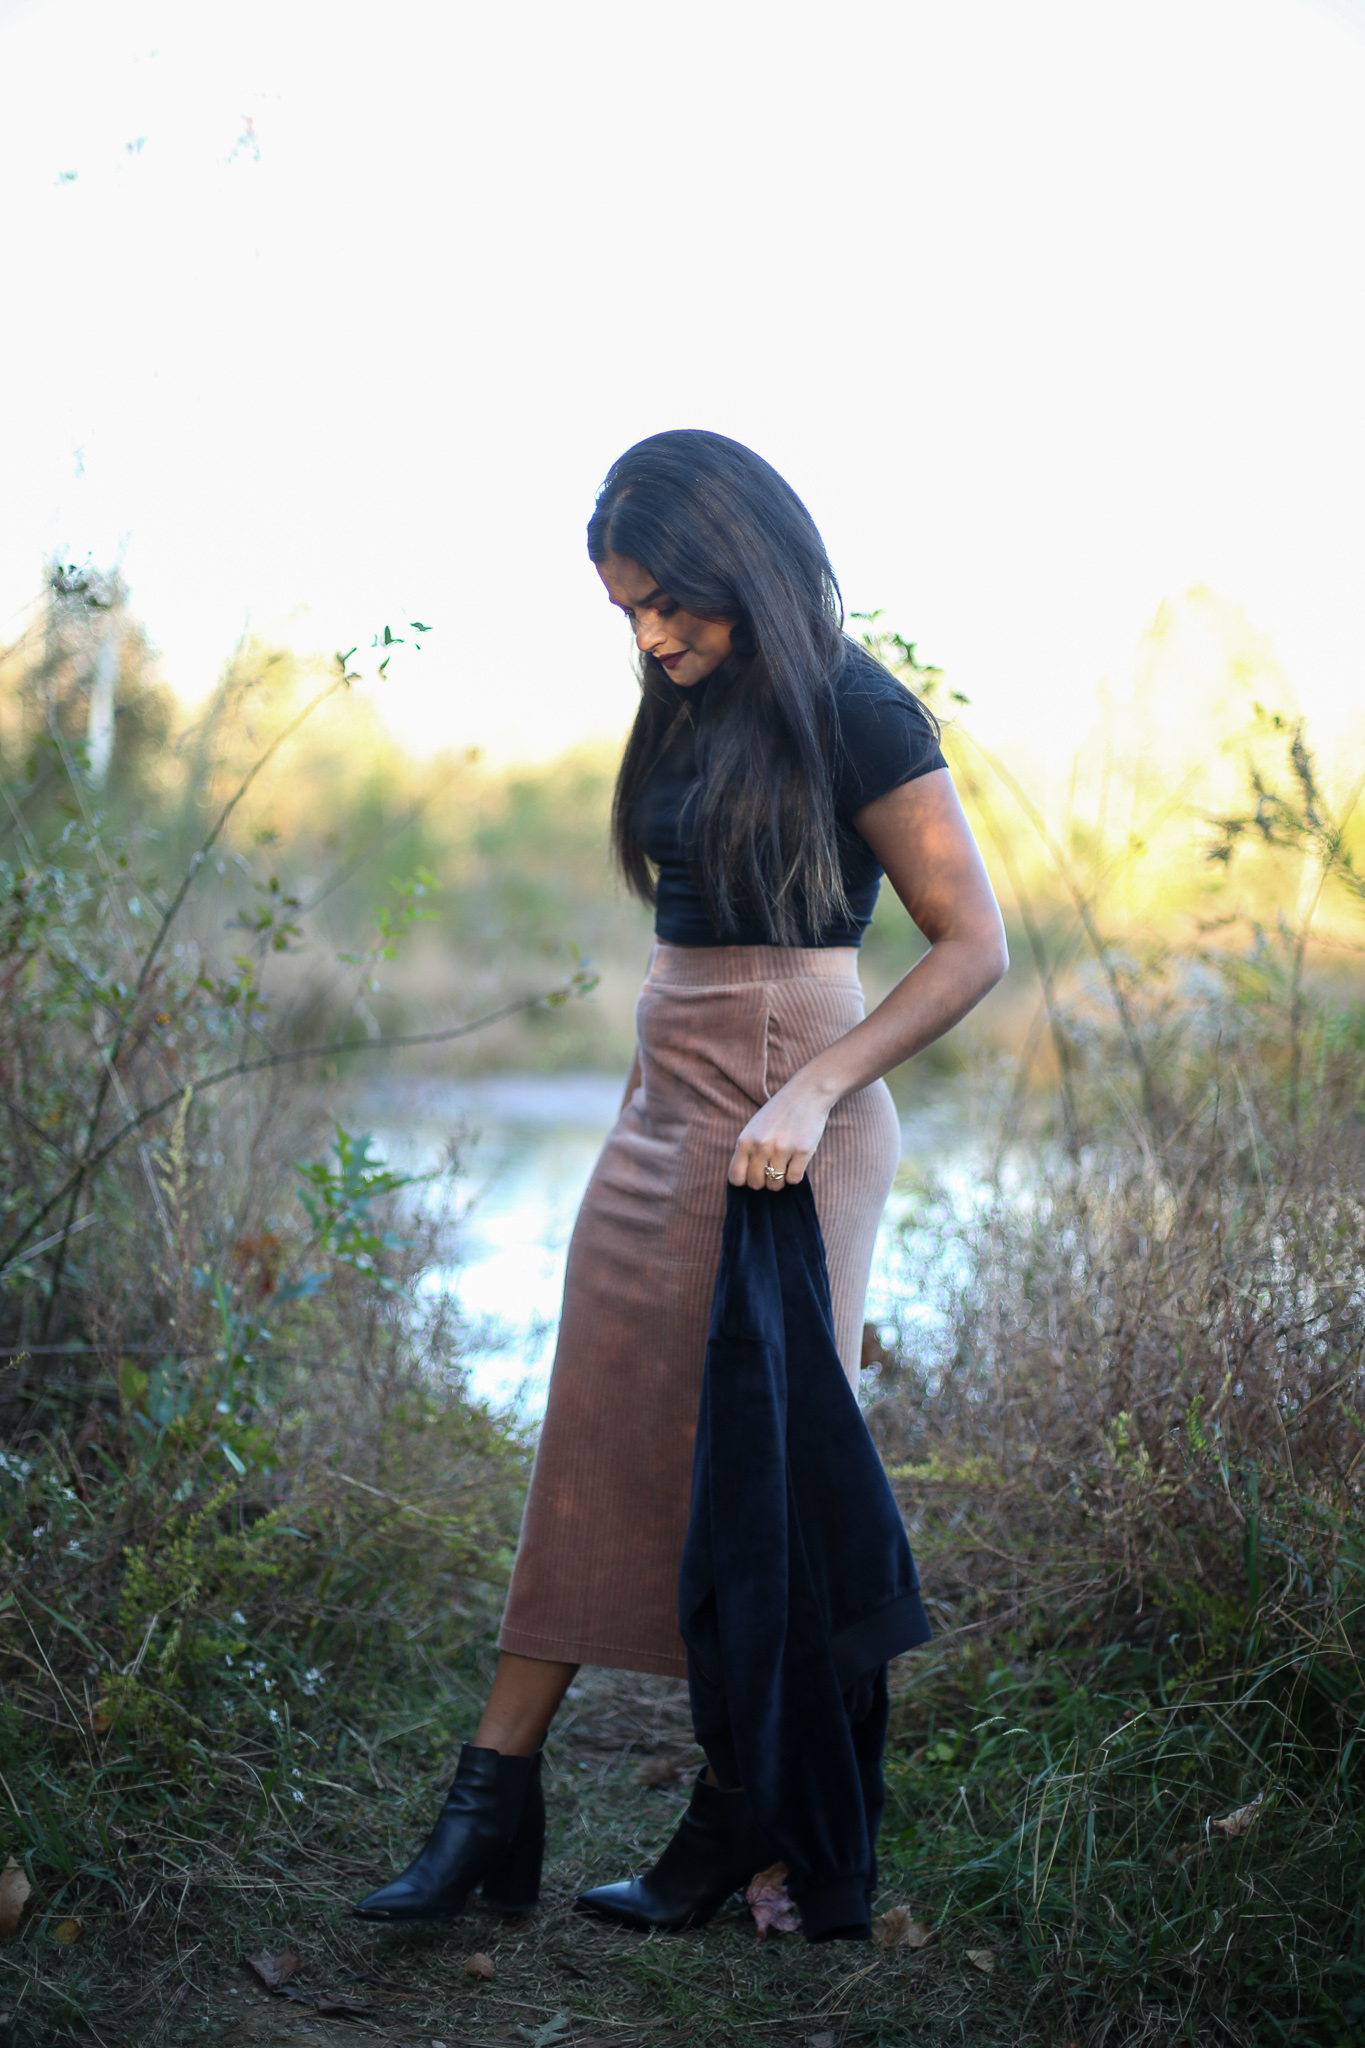 Priya the Blog, Nashville fashion blog, Nashville style blog, Nashville fashion blogger, Nashville style blogger, corduroy midi skirt, how to style a corduroy midi skirt, velvet jacket, black crop top, black pointed toe booties, Fall outfit, Fall style, Fall fashion, how to style a black crop top